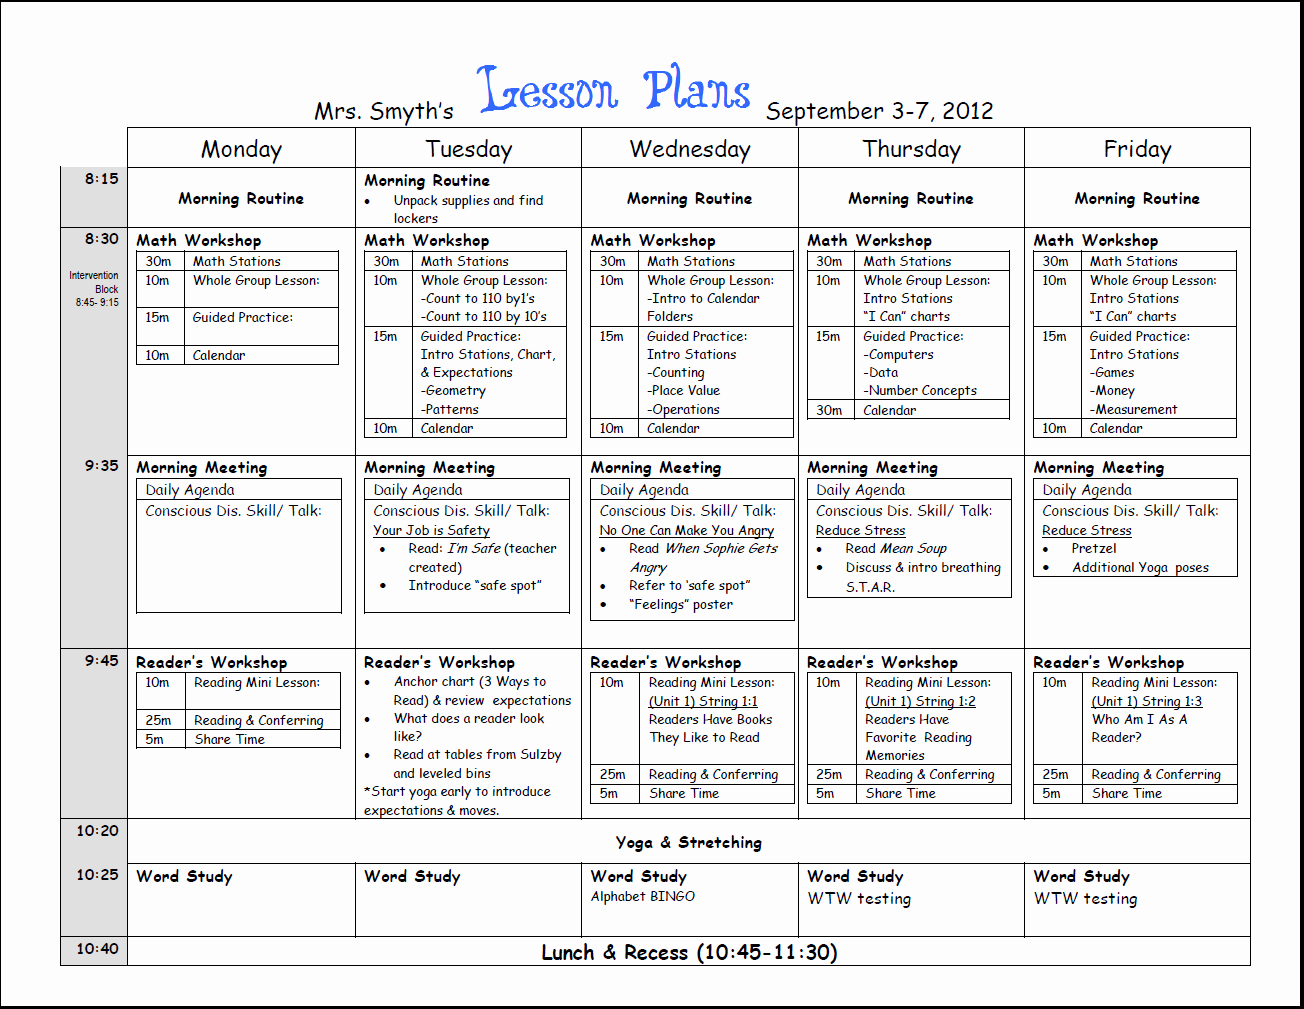 Free Weekly Lesson Plan Template Beautiful Free Weekly Lesson Plan Template and Teacher Resources